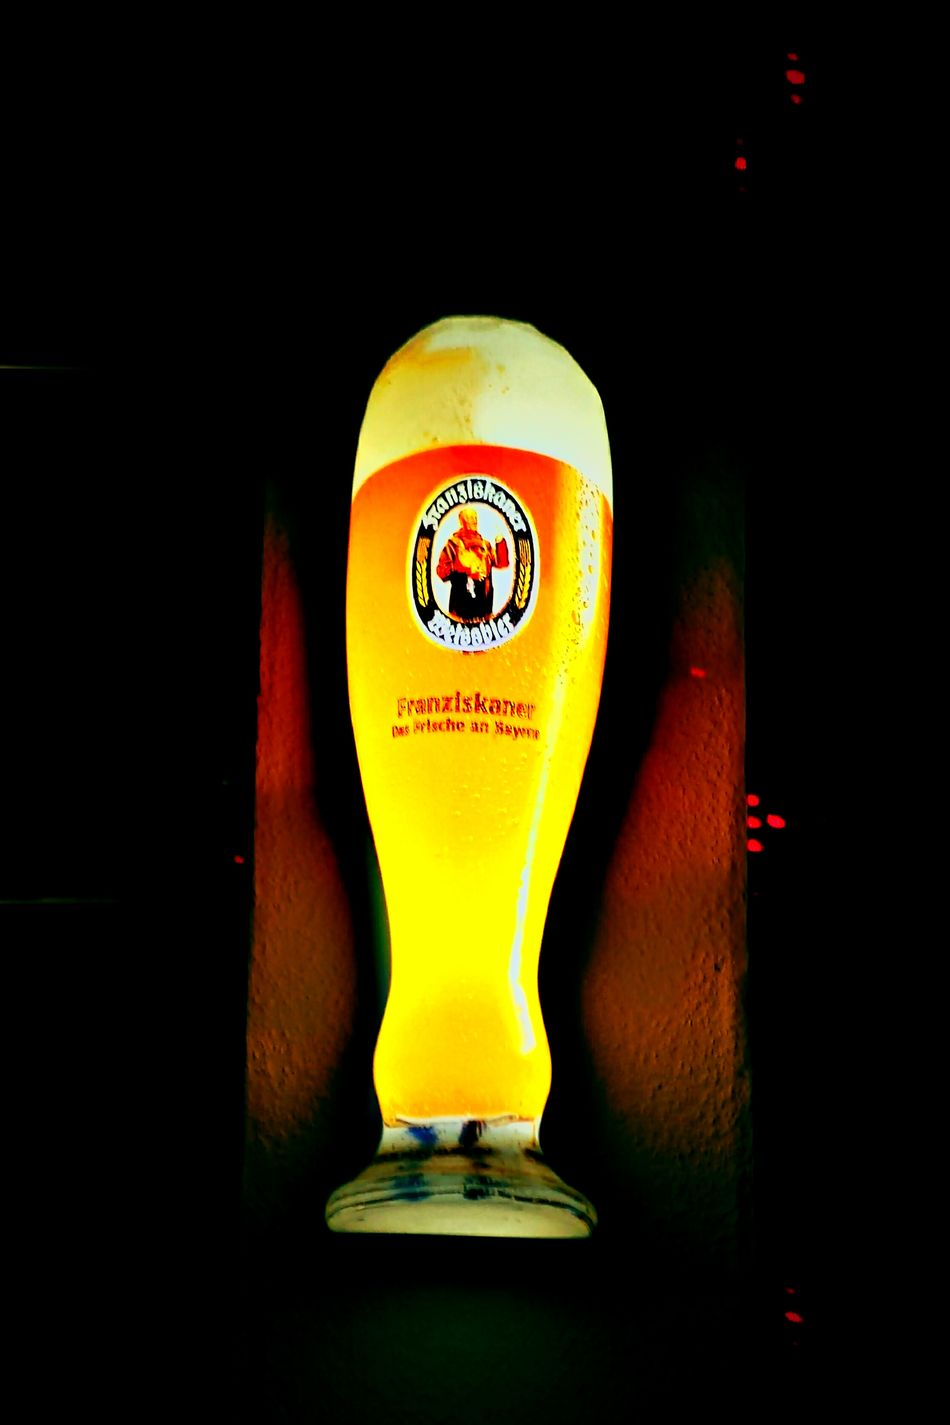 Photo Pictures Pictureoftheday Trinken Trinking Beergarden  Beer Time Beer Lights Indirect Lighting Light And Shadow Picture Human Meets Technology Déco Decoration Lamplight Lamps Decoracion Picturing Individuality Creativity Focus On Foreground Ligth And Shadow Scenics Kreatives Reflection